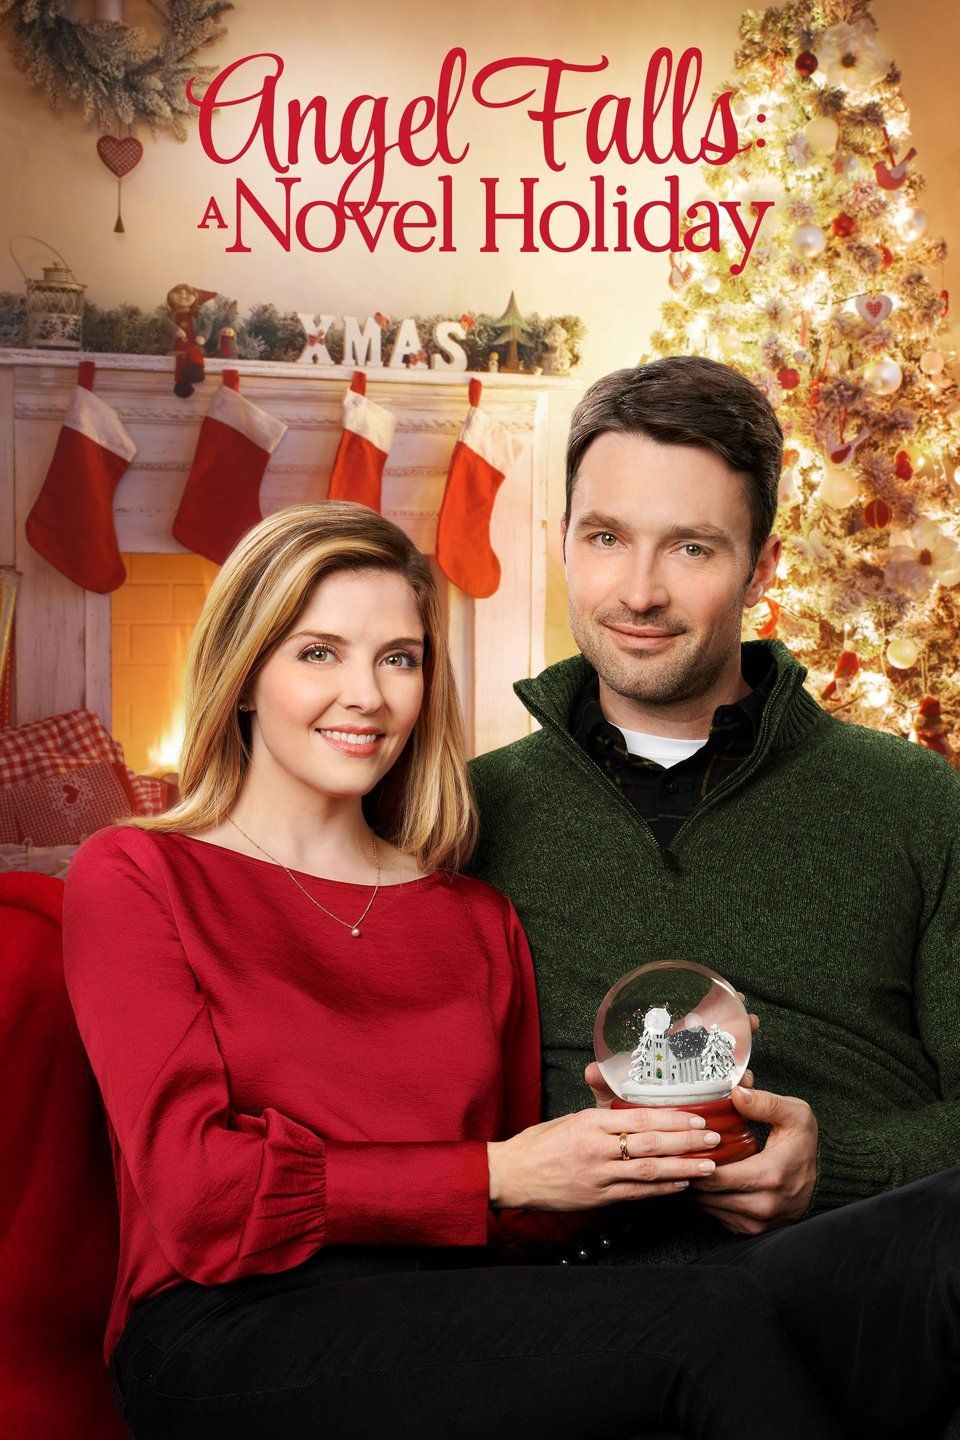 Pin by Maia on Hallmark movies romance (With images